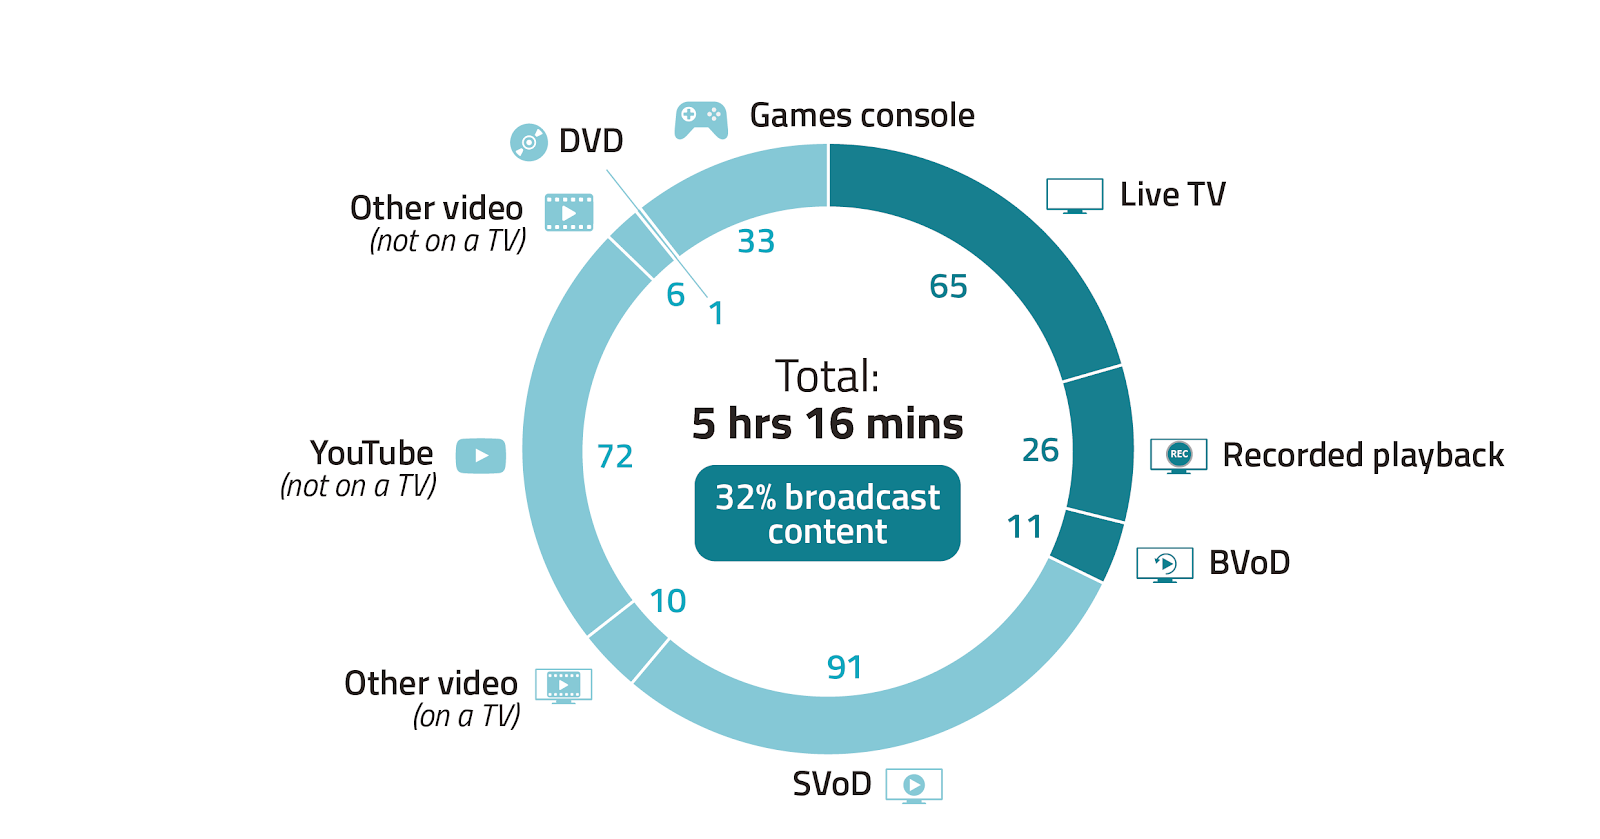 Image shows a doughnut chart showing the average minutes of viewing spent  per person per day for those aged 16-34, across different platforms in 2020. The total viewing per person per day across 2020 was 5 hours and 16 minutes.